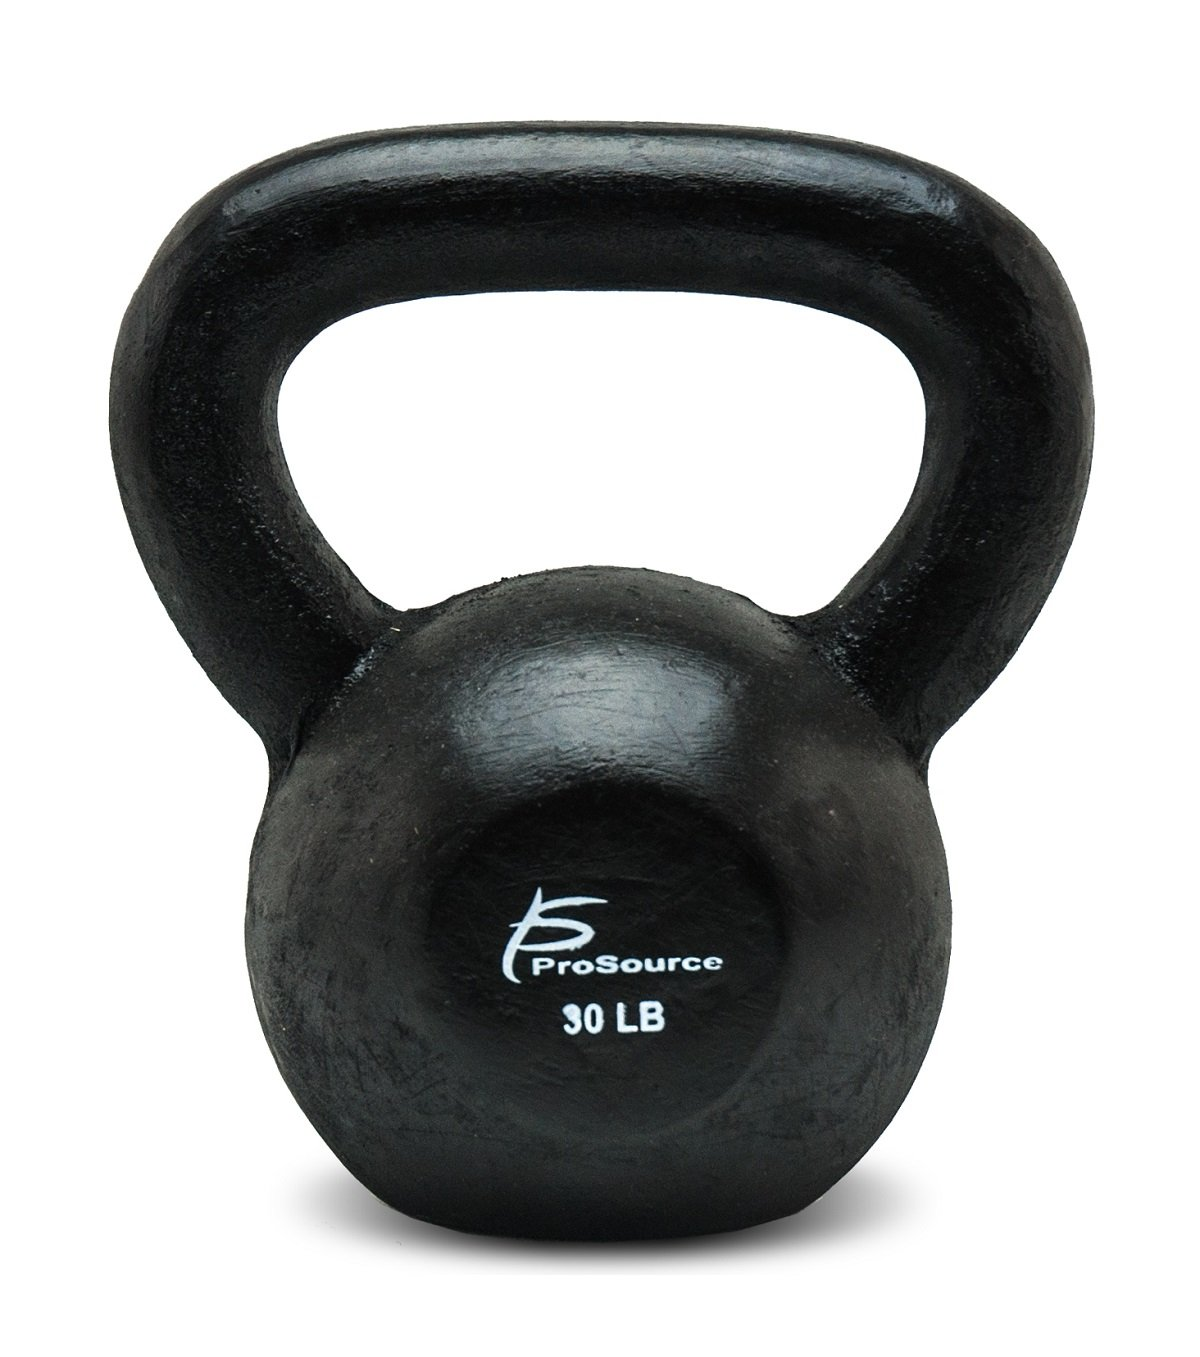 ProSource Solid Cast Iron Kettlebells Weights for Full Body Workout, 5 to 45 pounds 10 pounds ProSource Discounts Inc ps-1129-kettle-iron-10